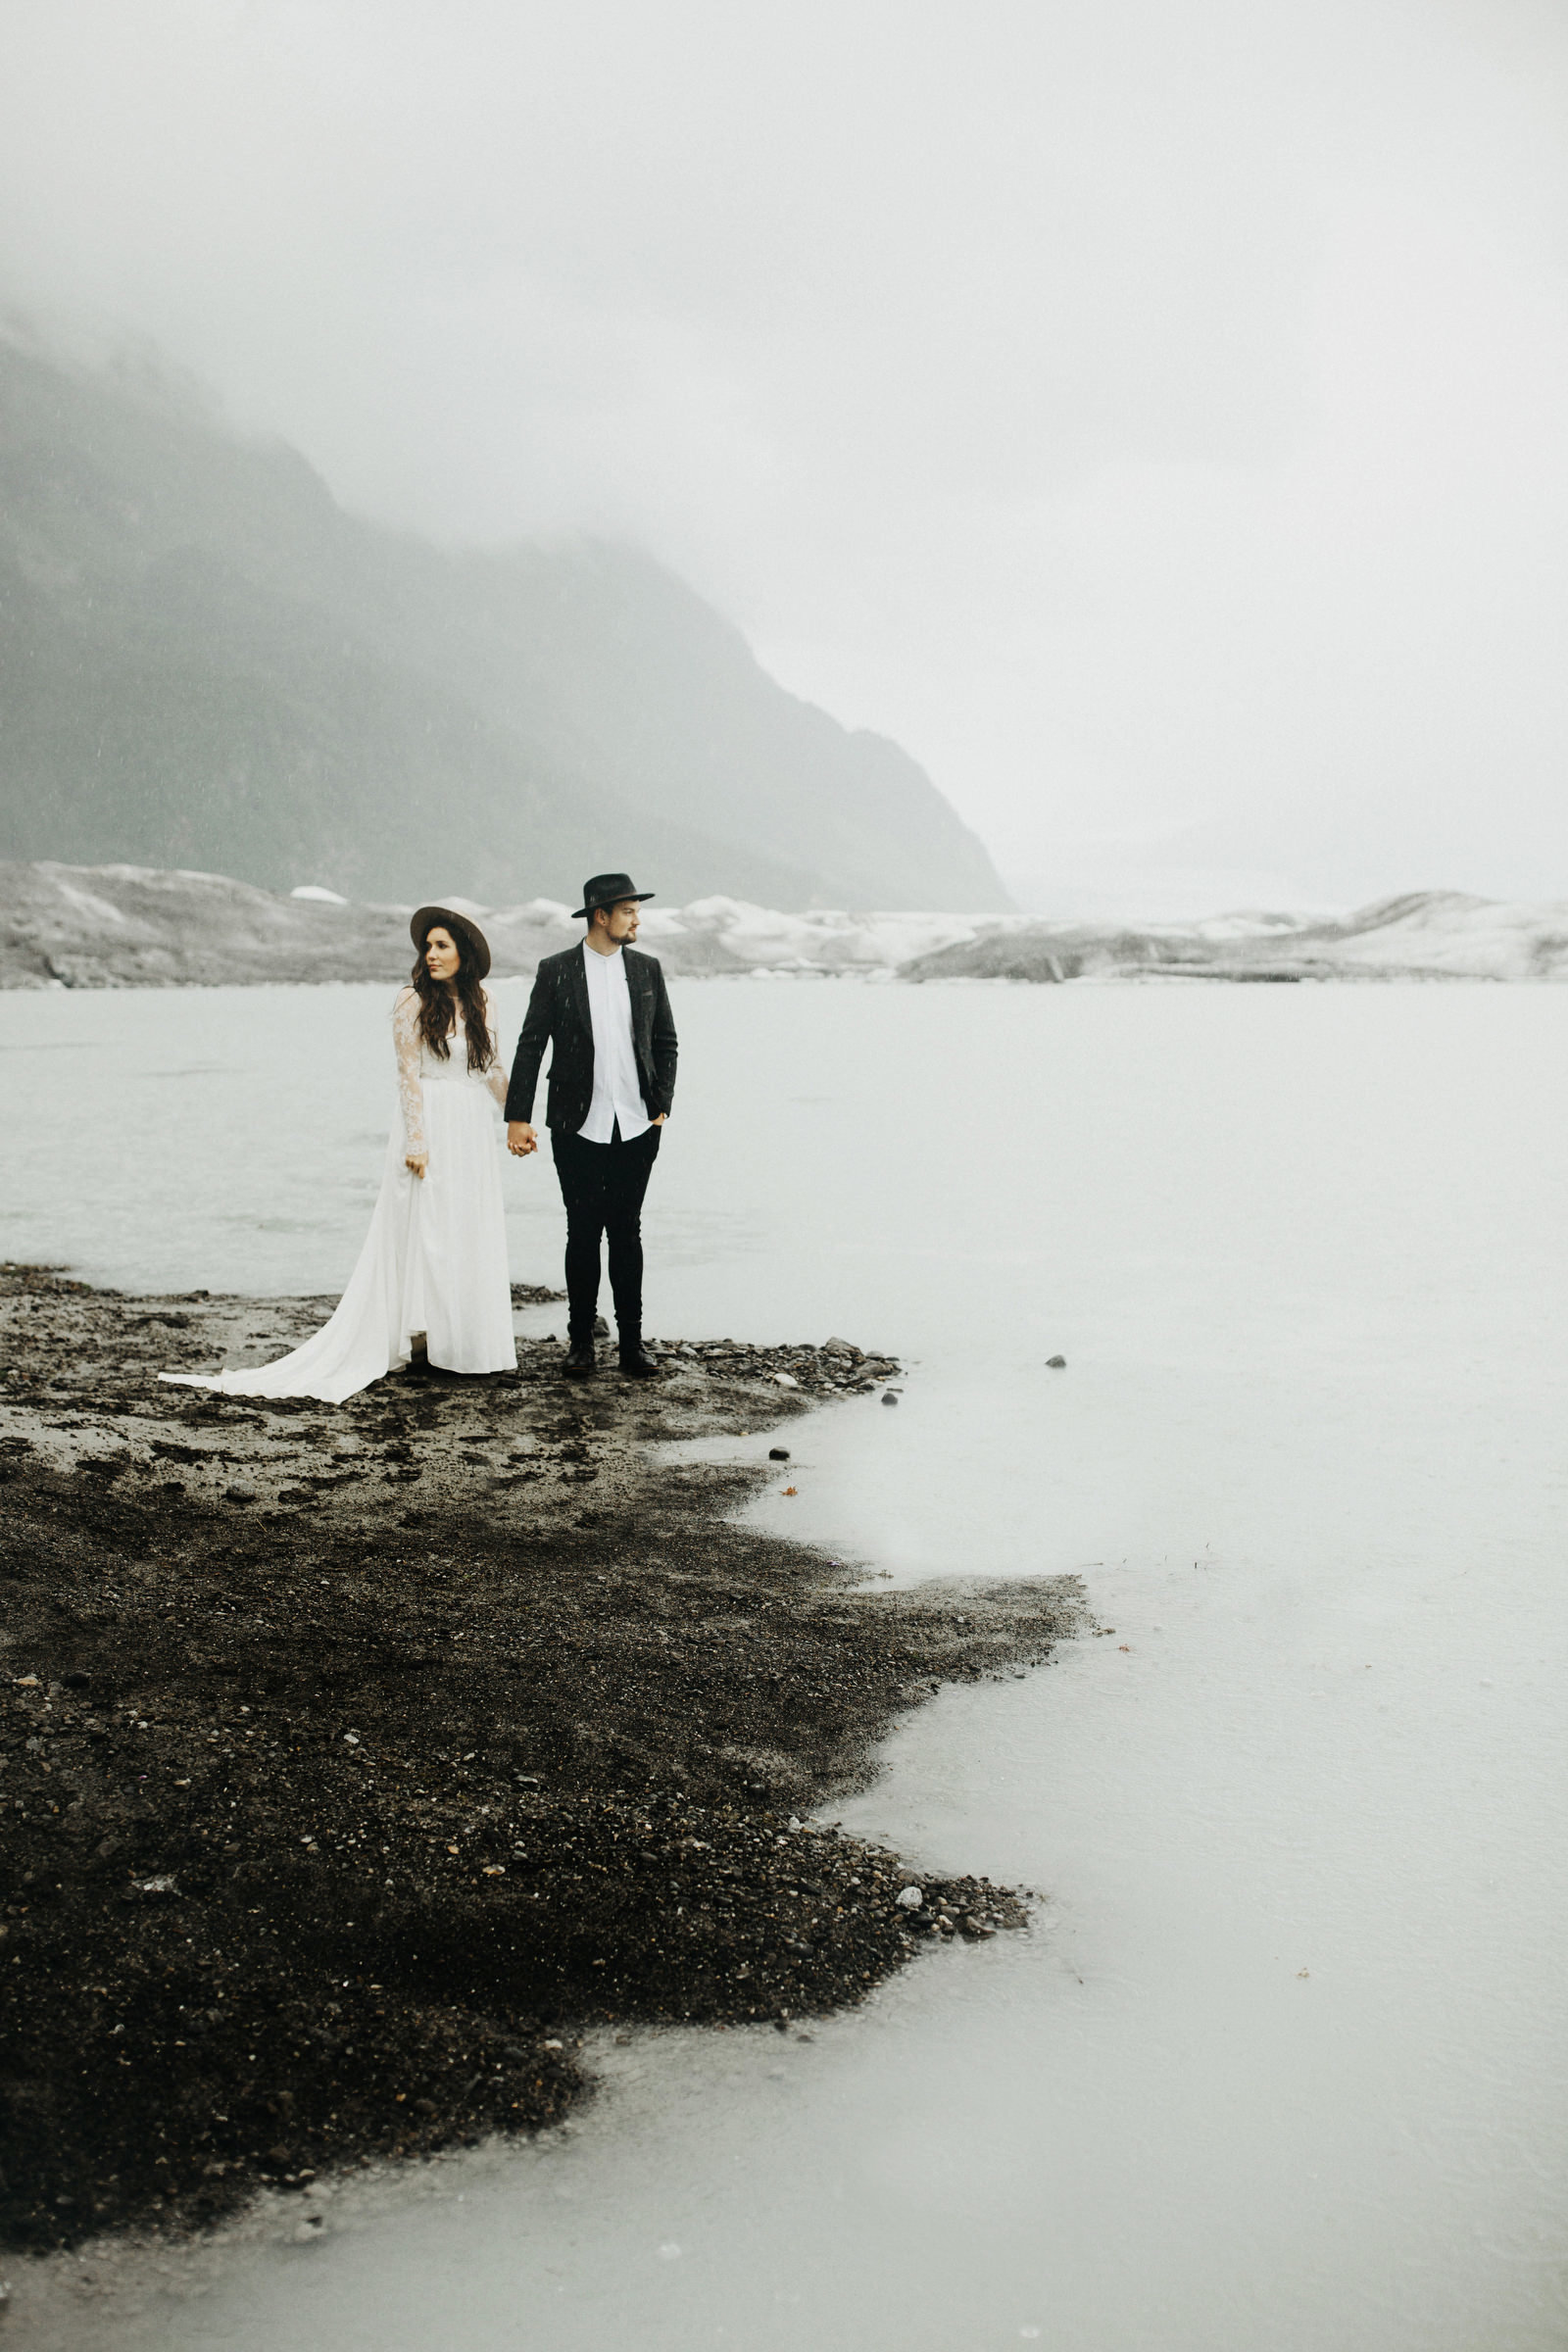 athena-and-camron-alaska-elopement-wedding-inspiration-india-earl-athena-grace-glacier-lagoon-wedding75